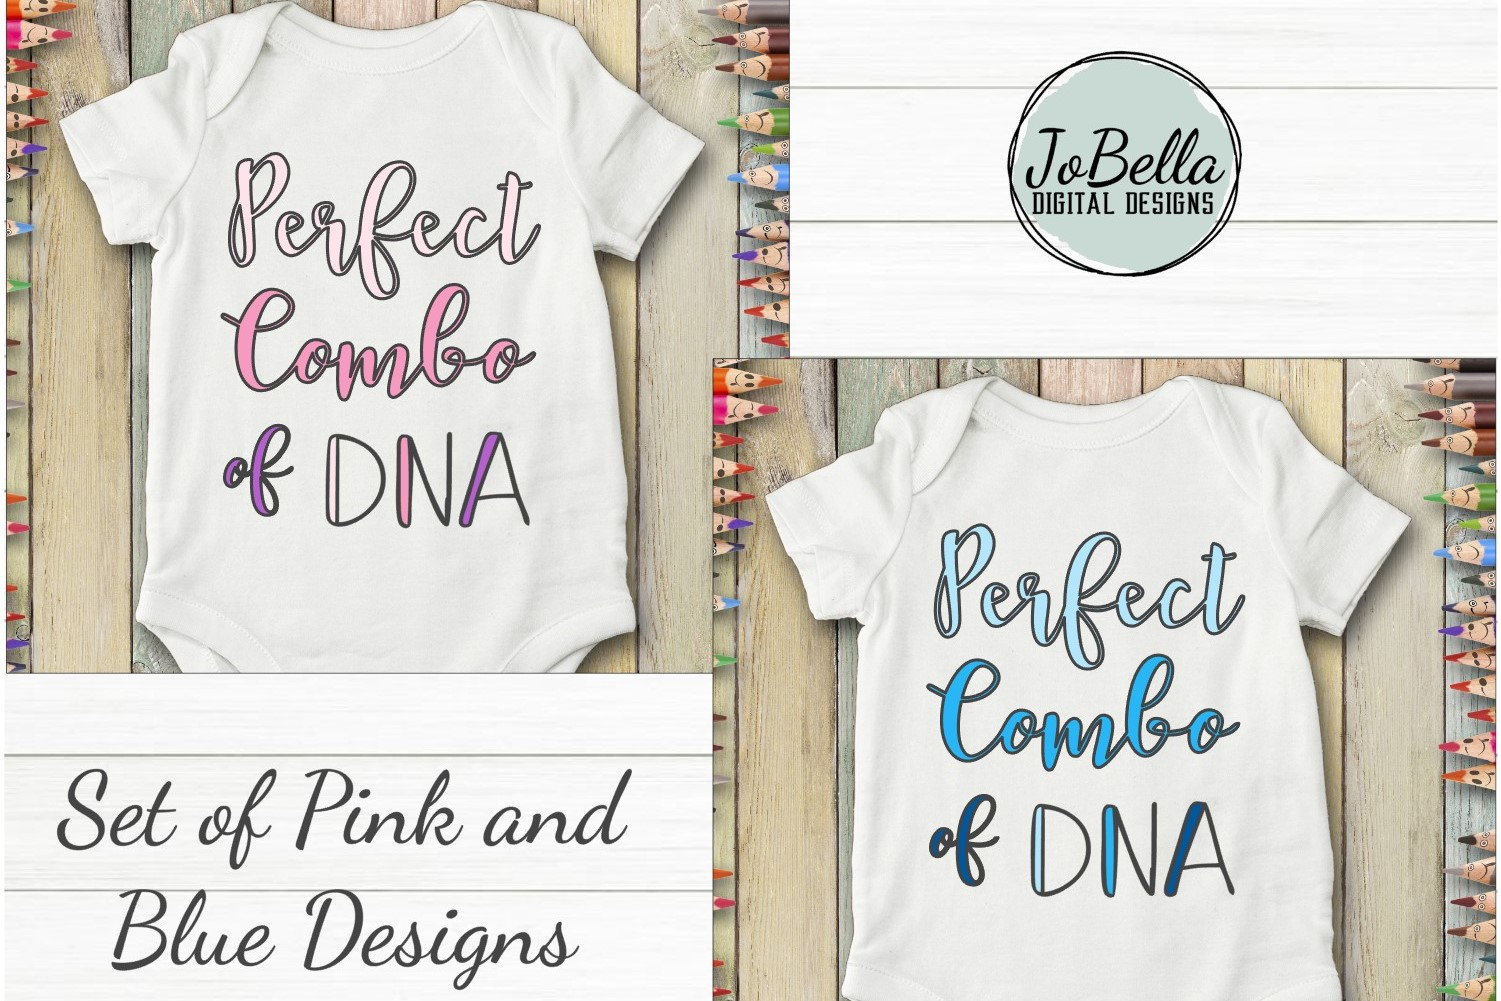 Baby or Kid Shirt SVG - Perfect Combo of DNA Girl and Boy example image 1